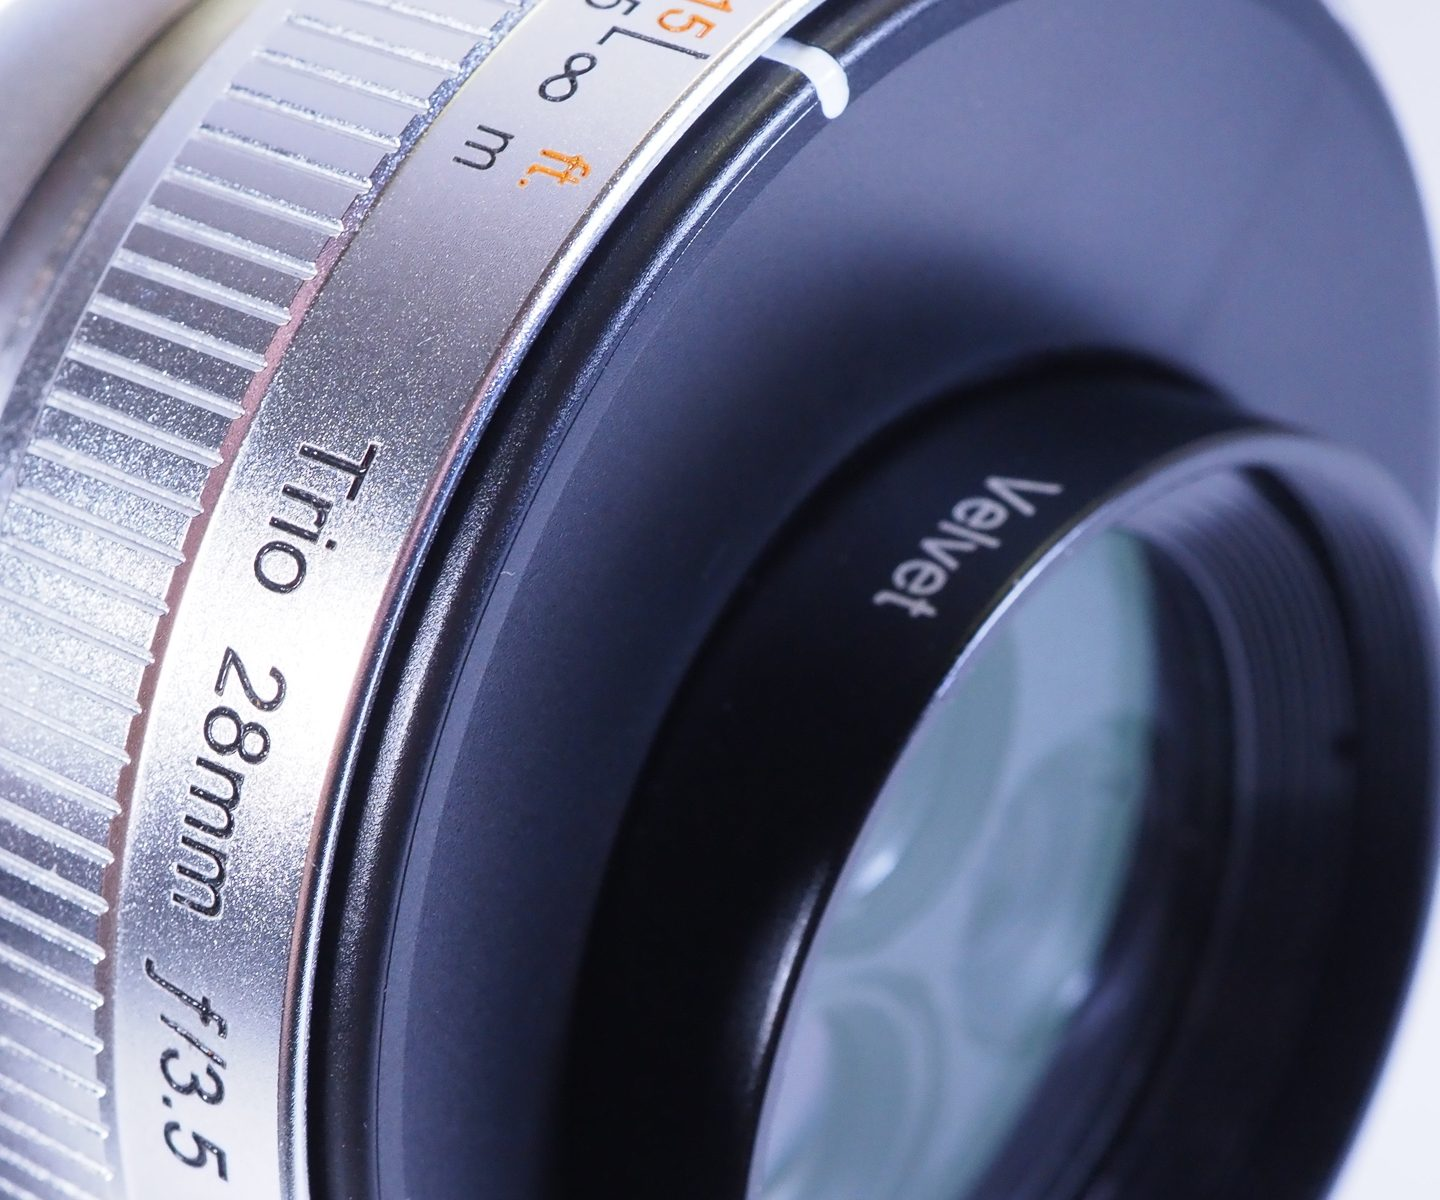 Lensbaby Trio 28 – A Review